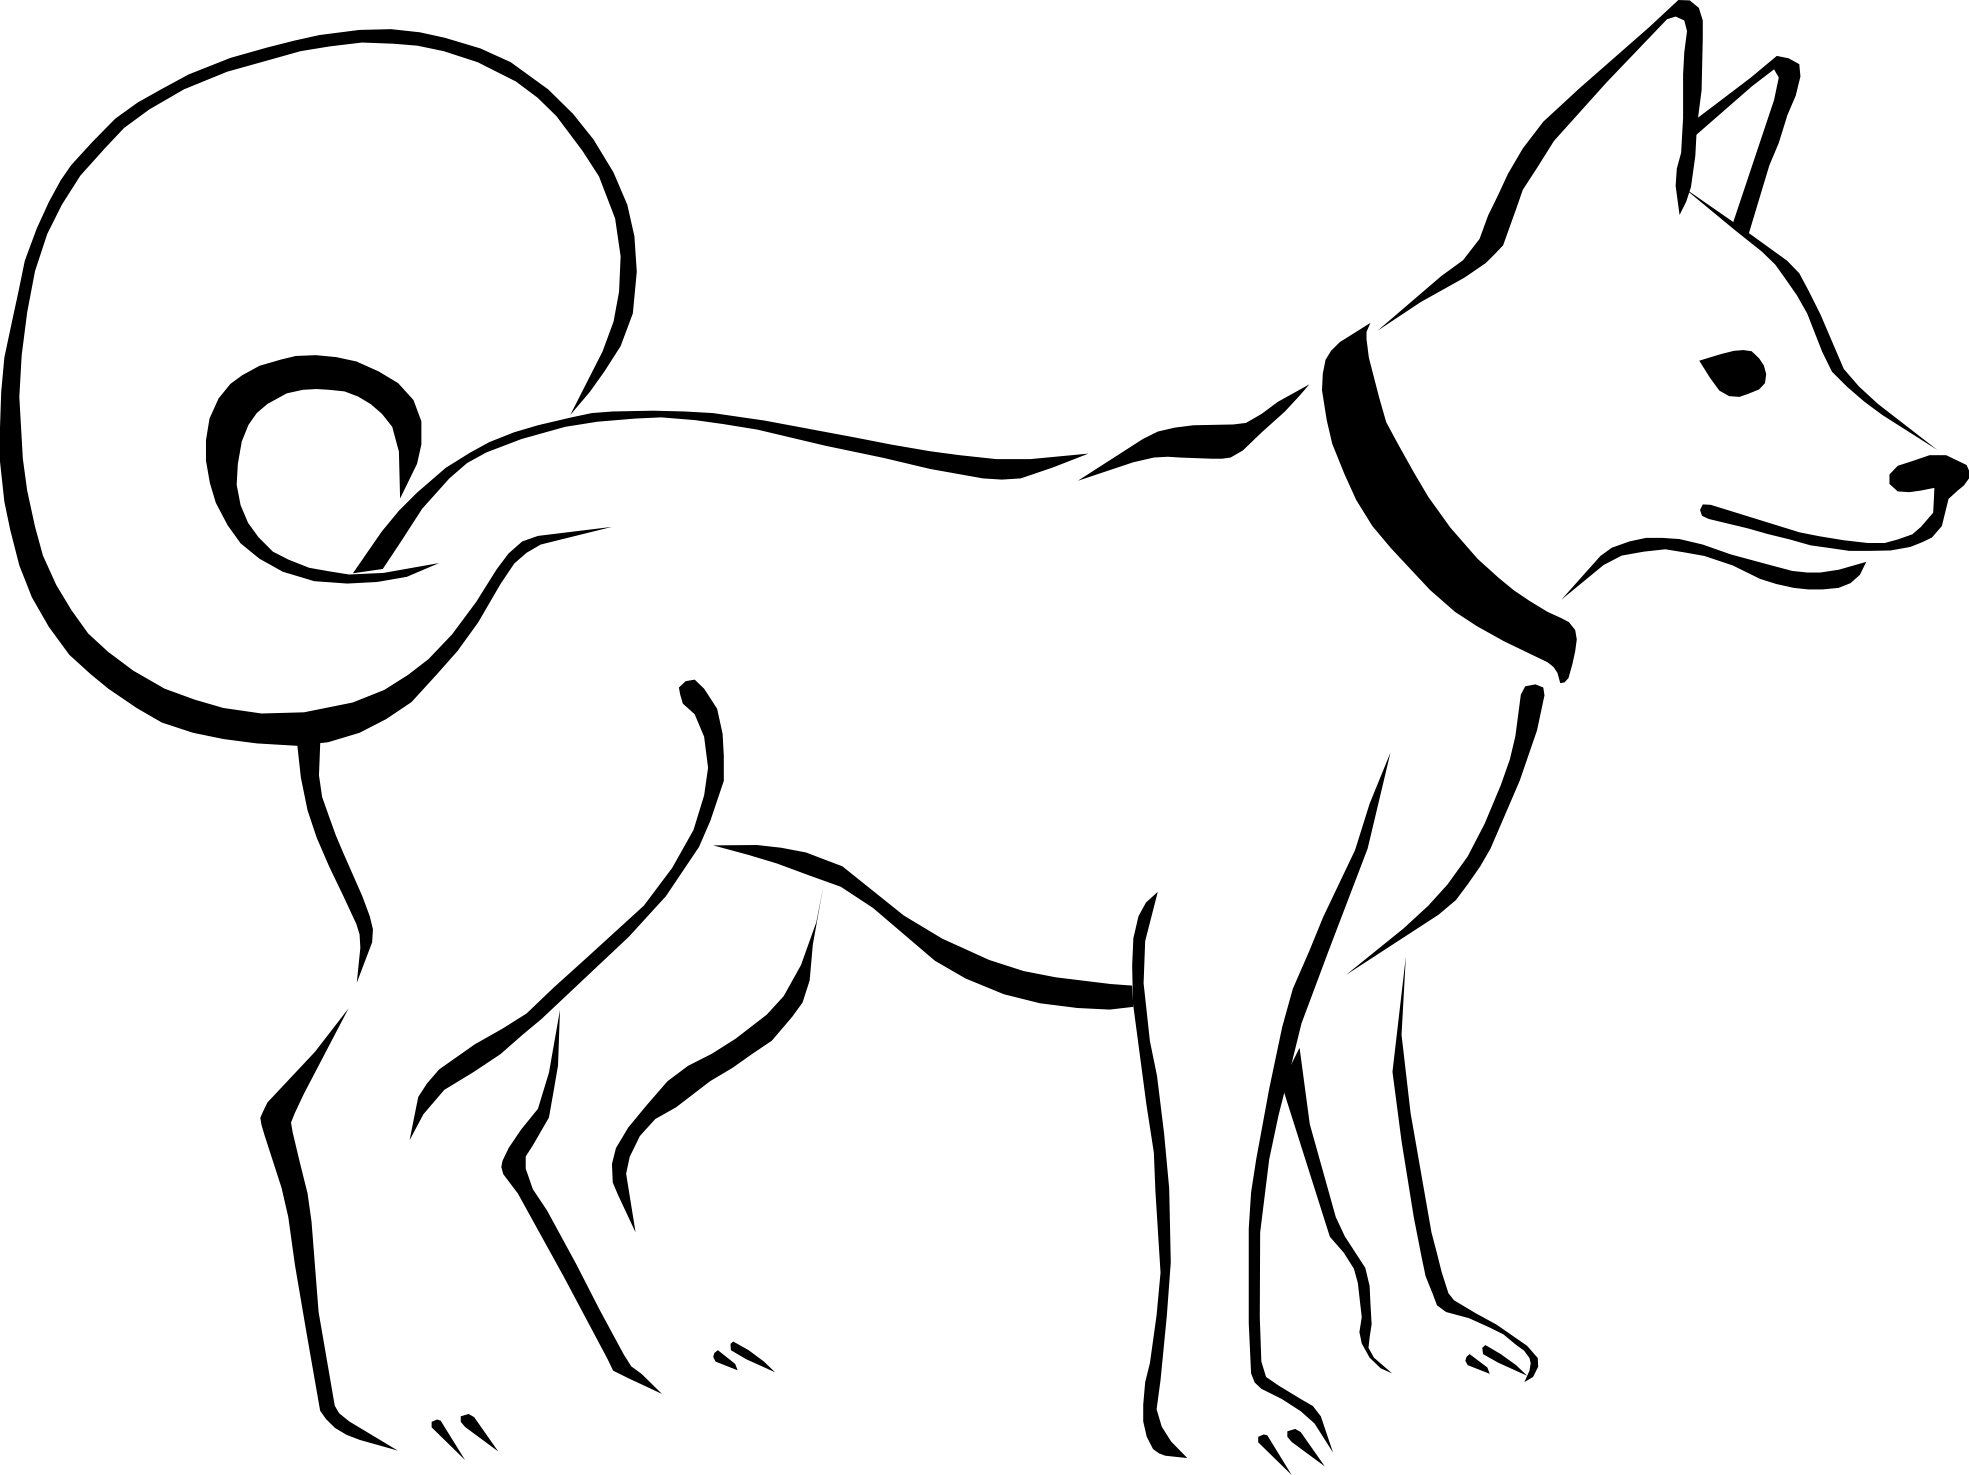 Dog black and white dog clip art black and white free clipart images 3